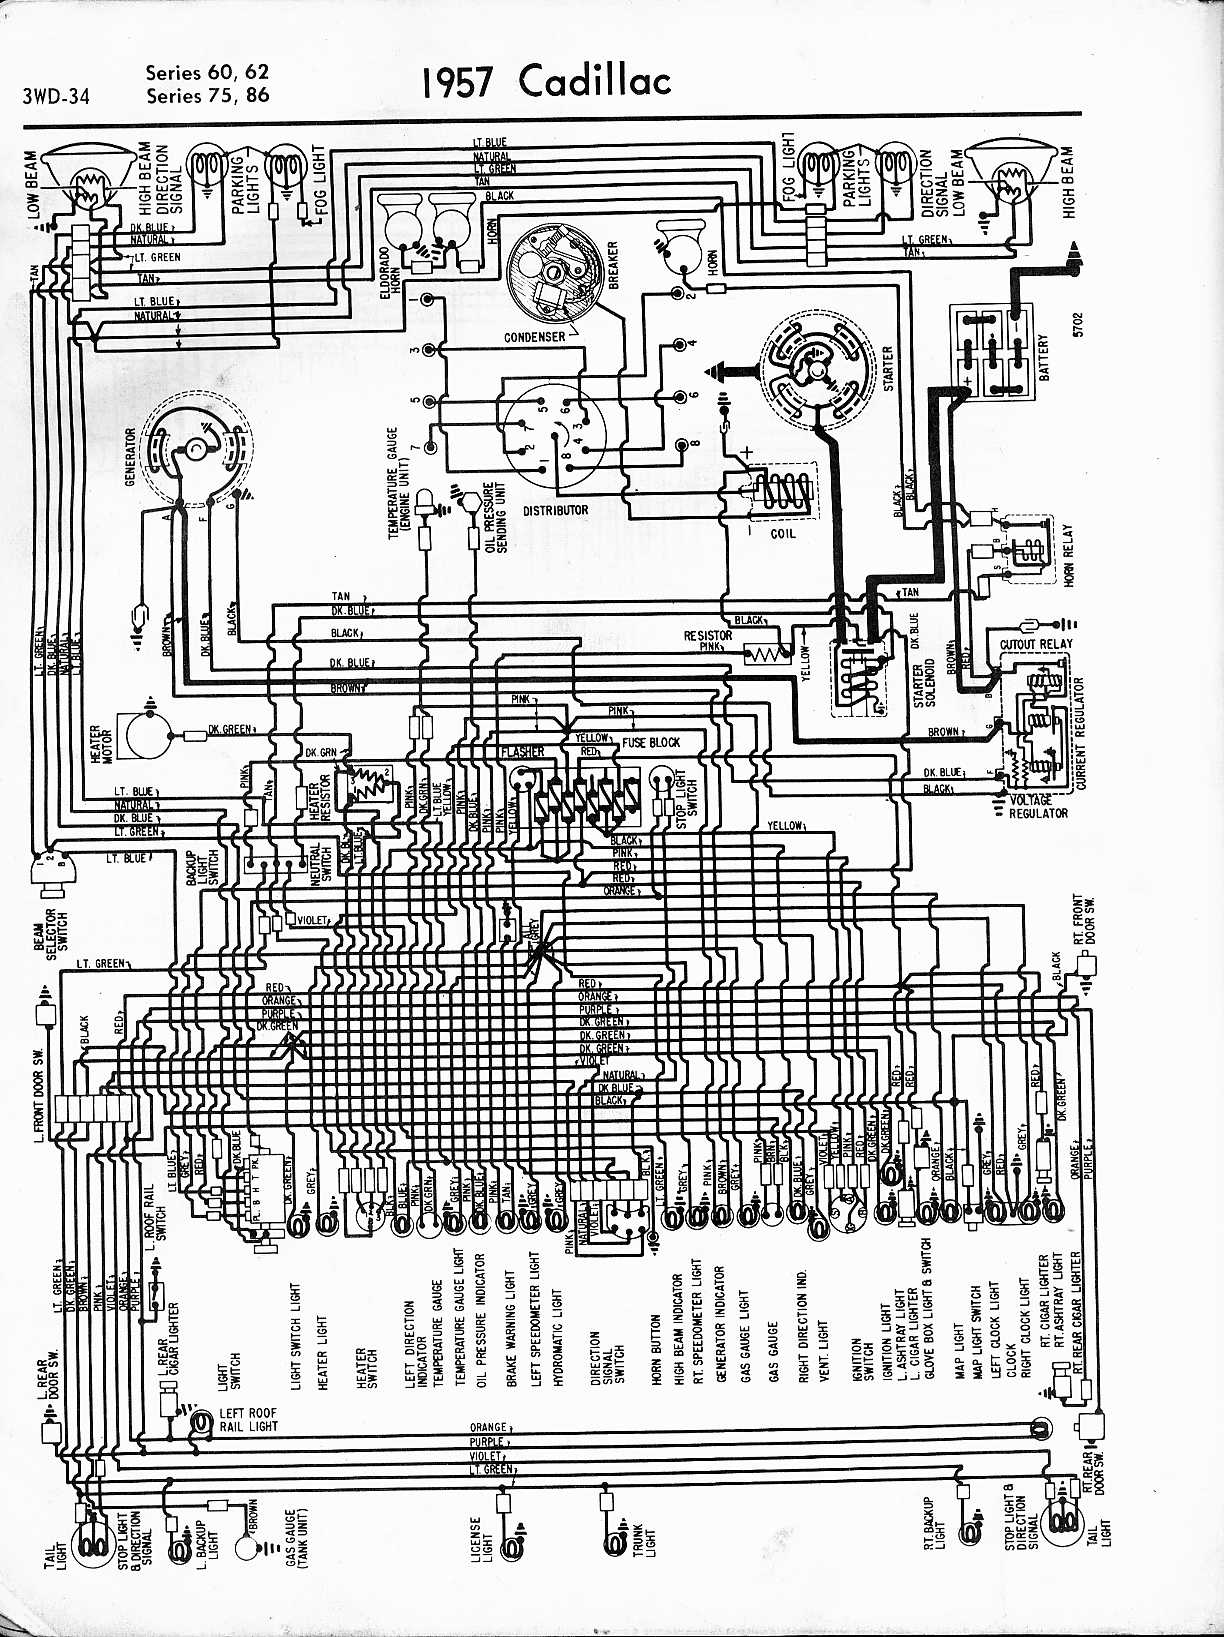 1963 cadillac spark plug wire diagram catalogue of schemas 1954 chrysler new yorker wiring diagram